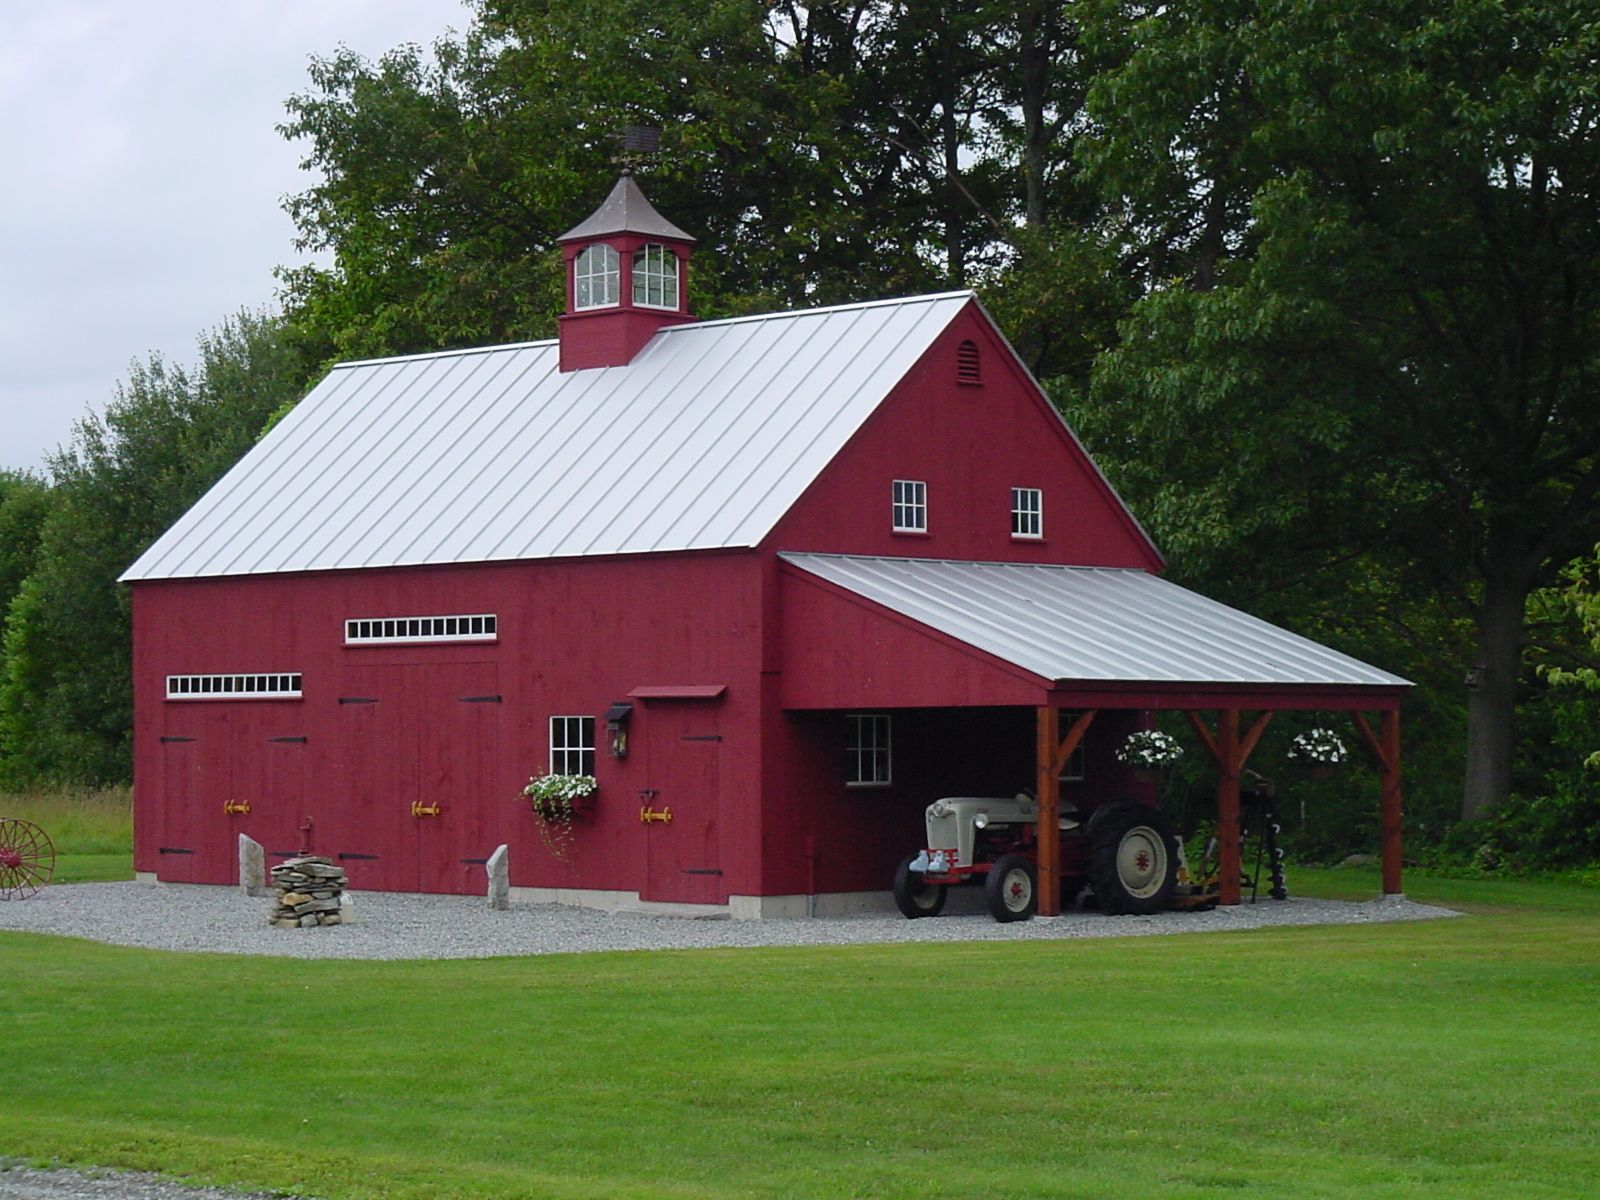 Our 1 1 2 story barn 22 39 x 36 39 with 12 39 x 20 39 open lean to for Lean to barn